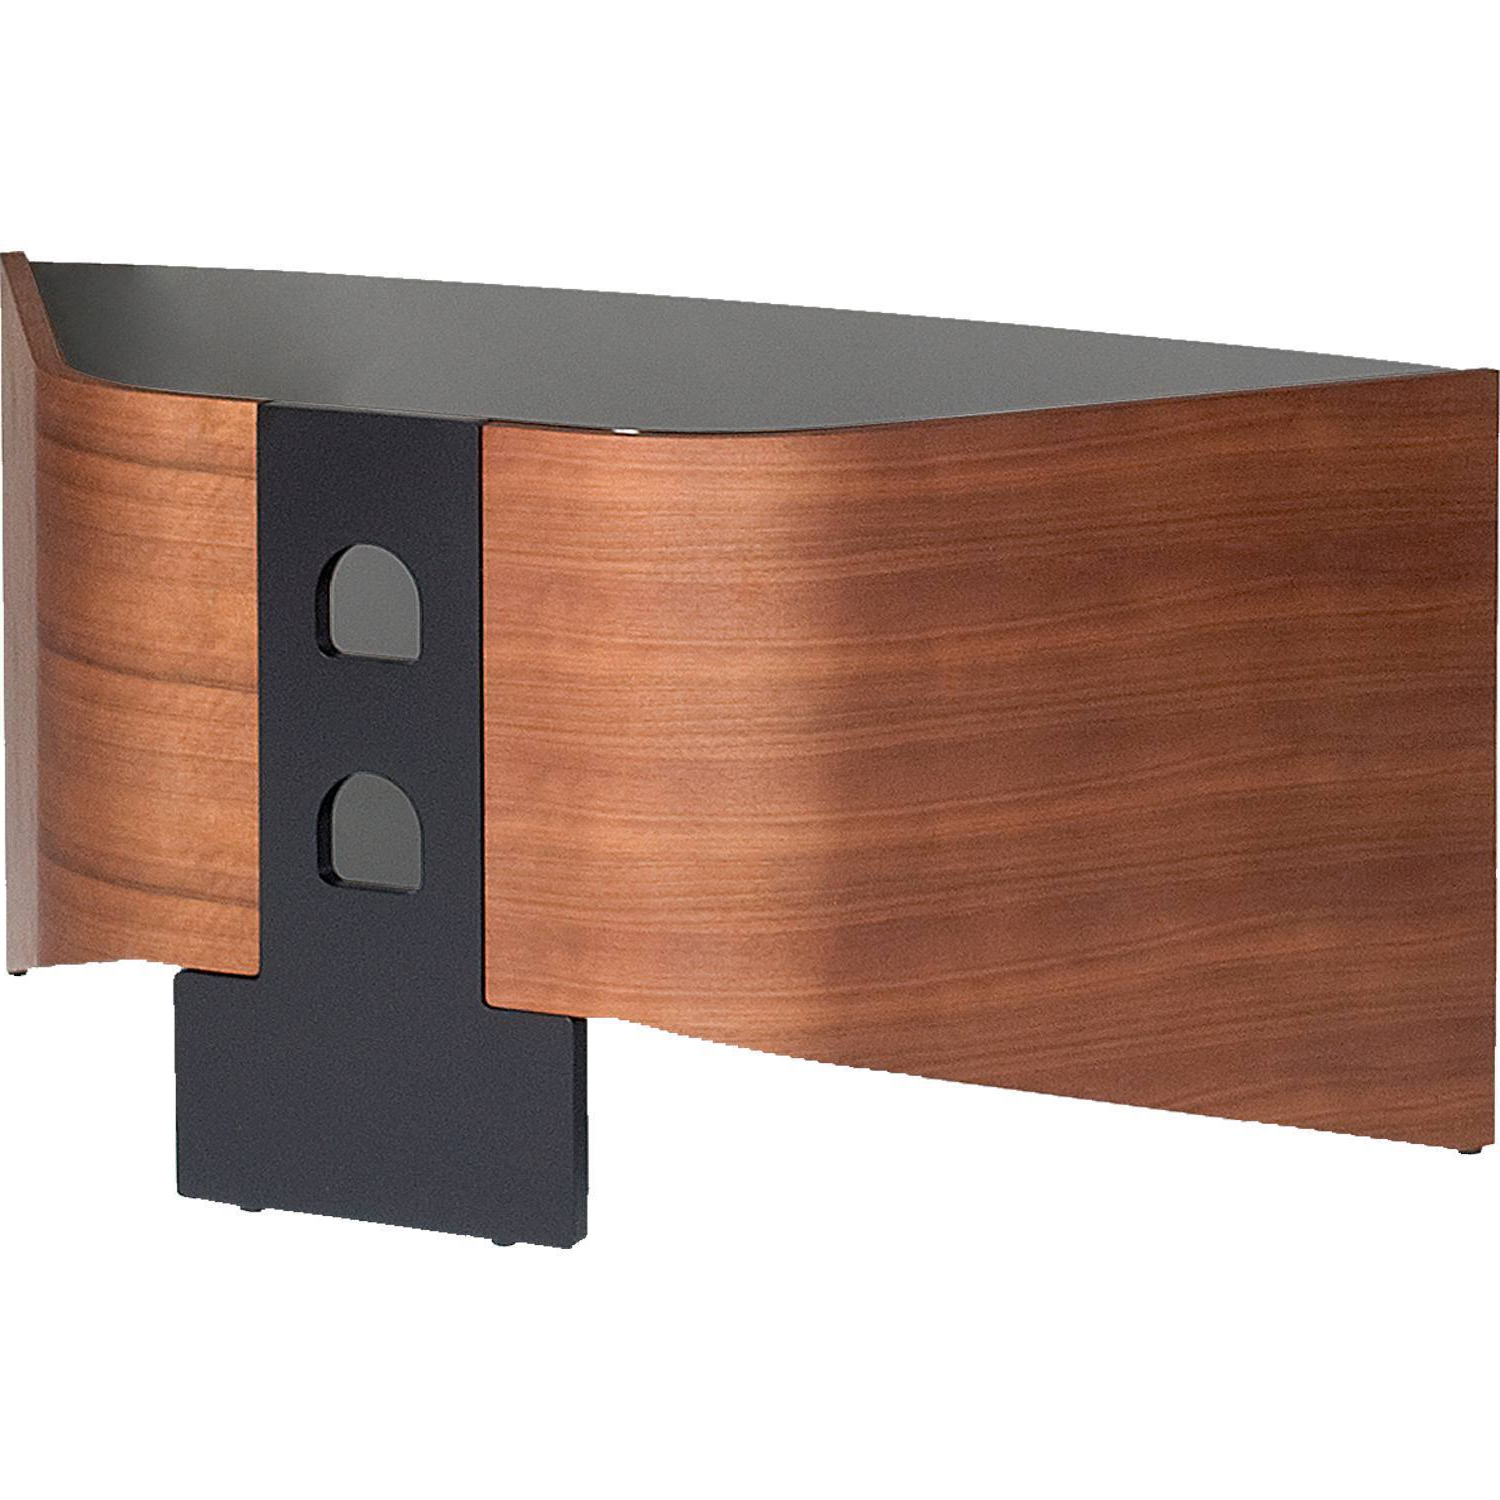 Most Recent Techlink Riva Tv Stands With Techlink Riva Rv100w Walnut With Black Glass Tv Stand For Up To (View 18 of 20)